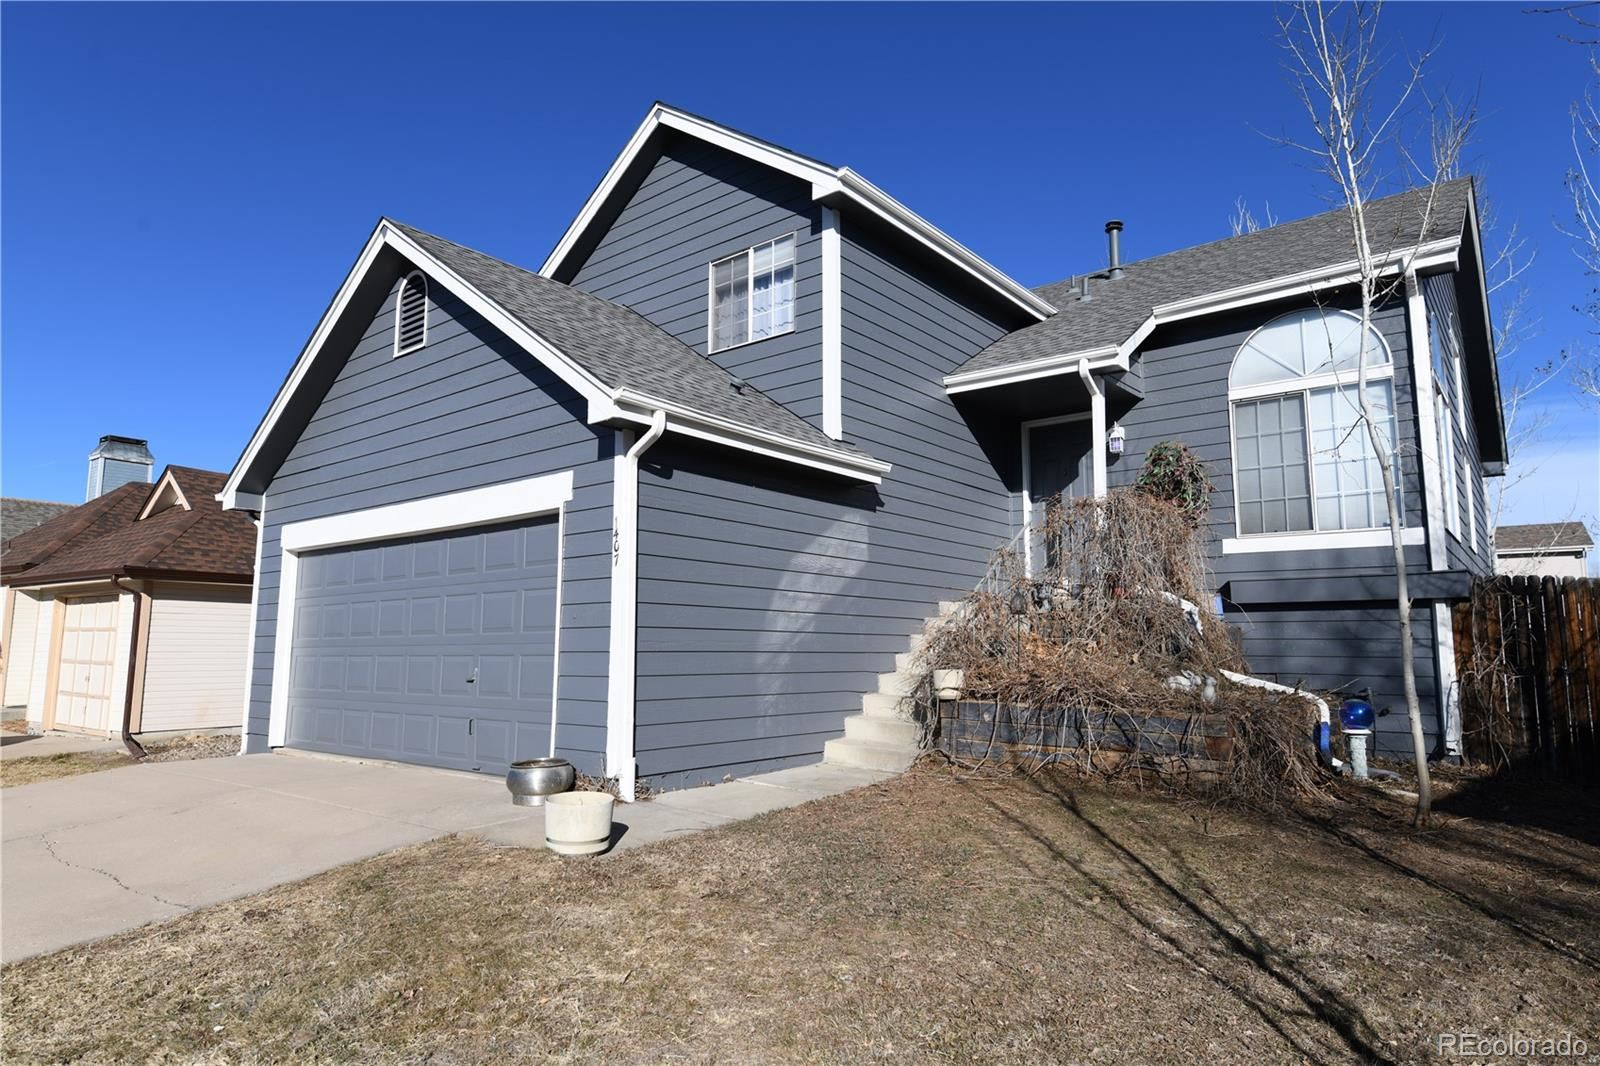 1407 W 134th Drive, Westminster, CO 80234 - #: 3692495